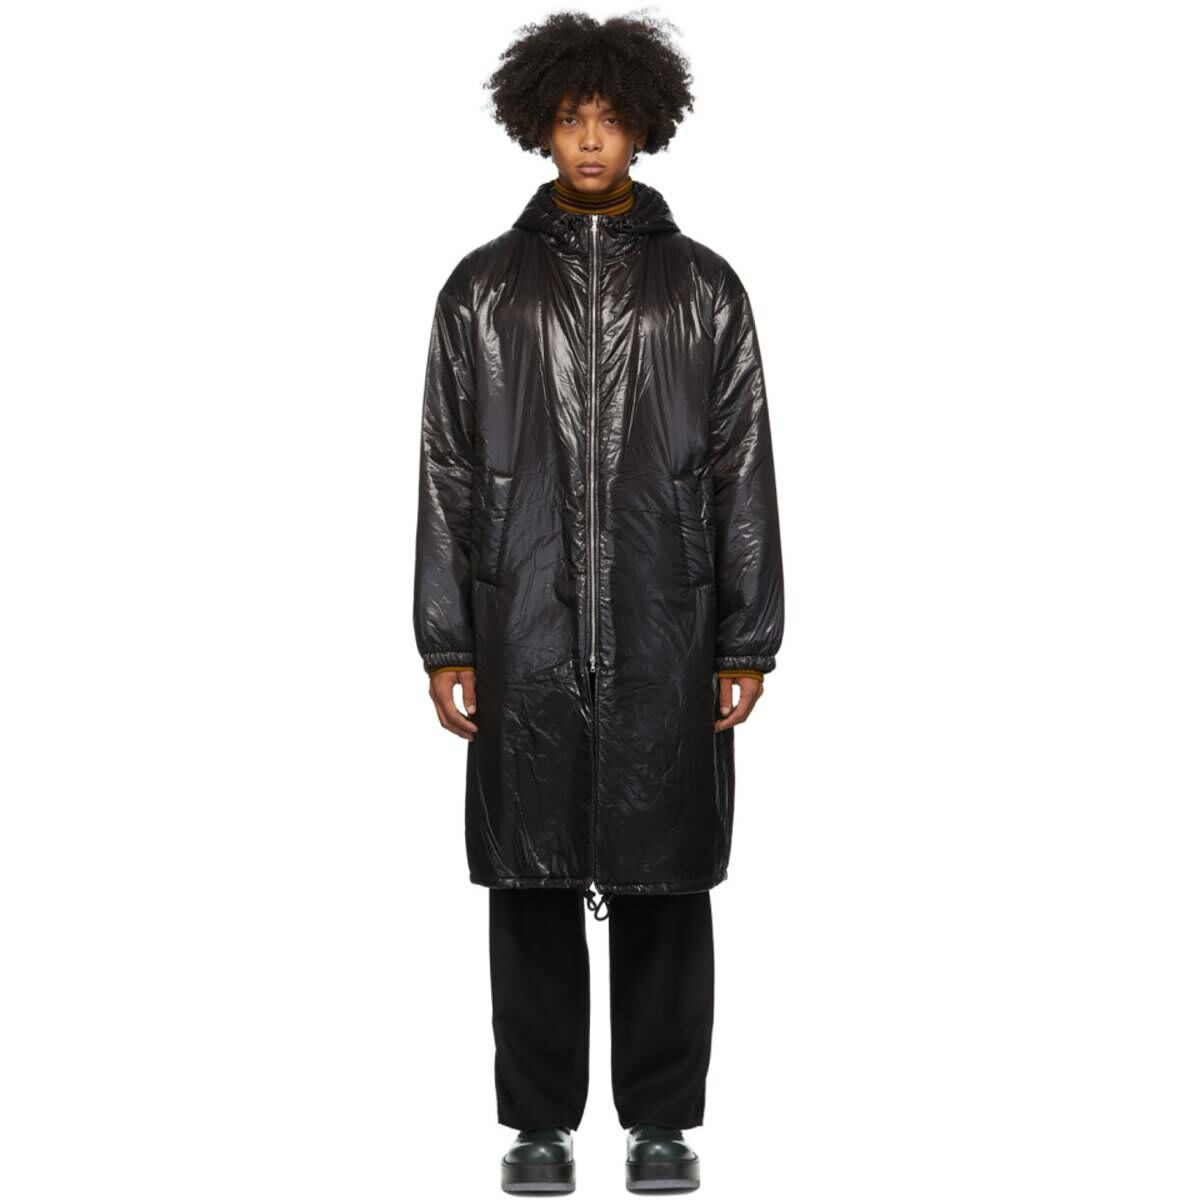 Dries Van Noten Black Shiny Long Coat Ssense USA MEN Men FASHION Mens COATS